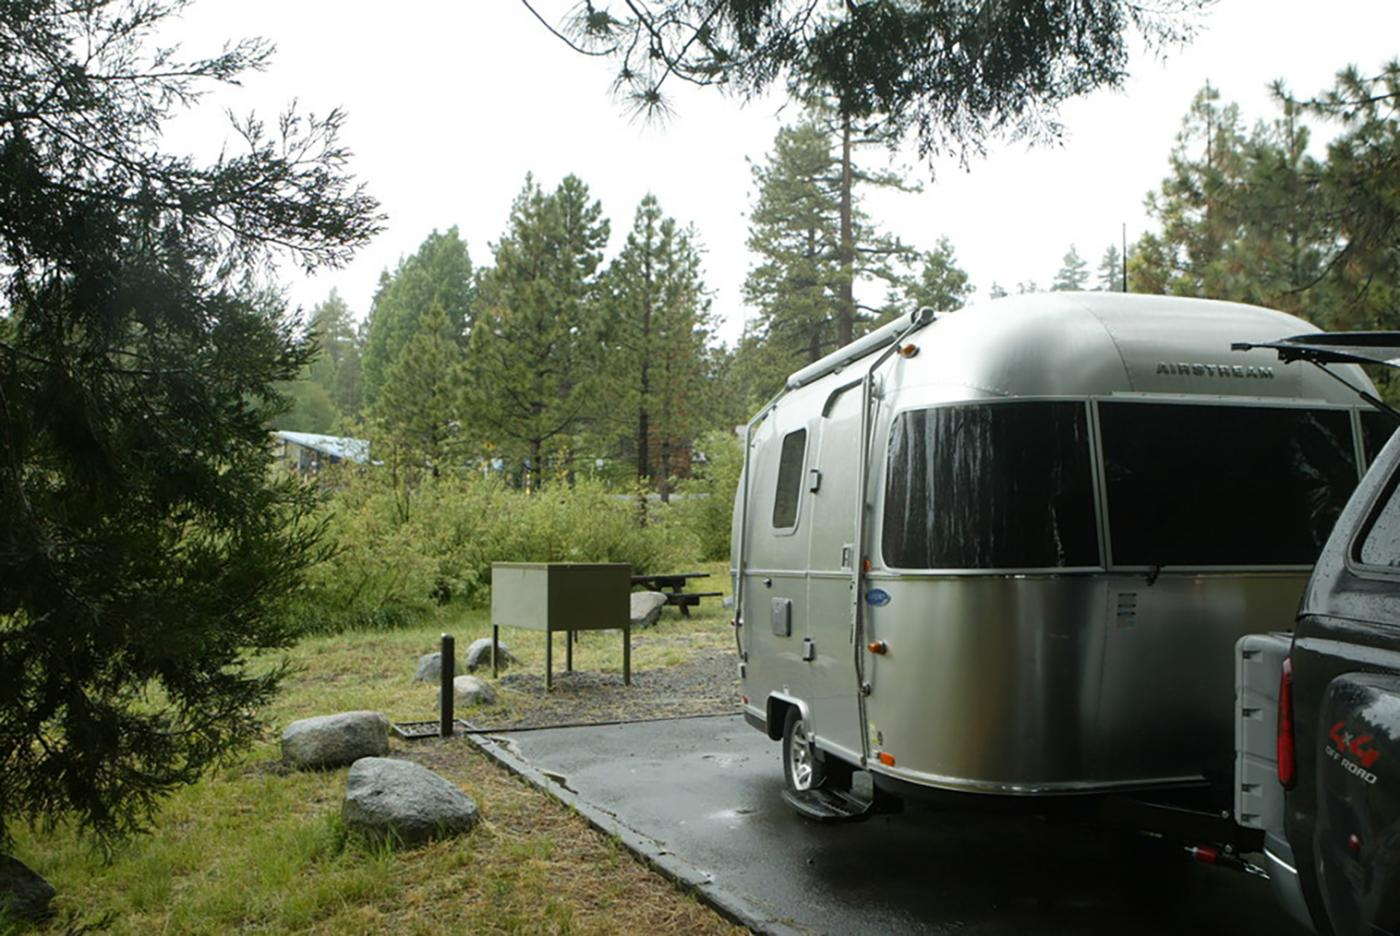 Who wouldn't want to go camping in an Airstream?